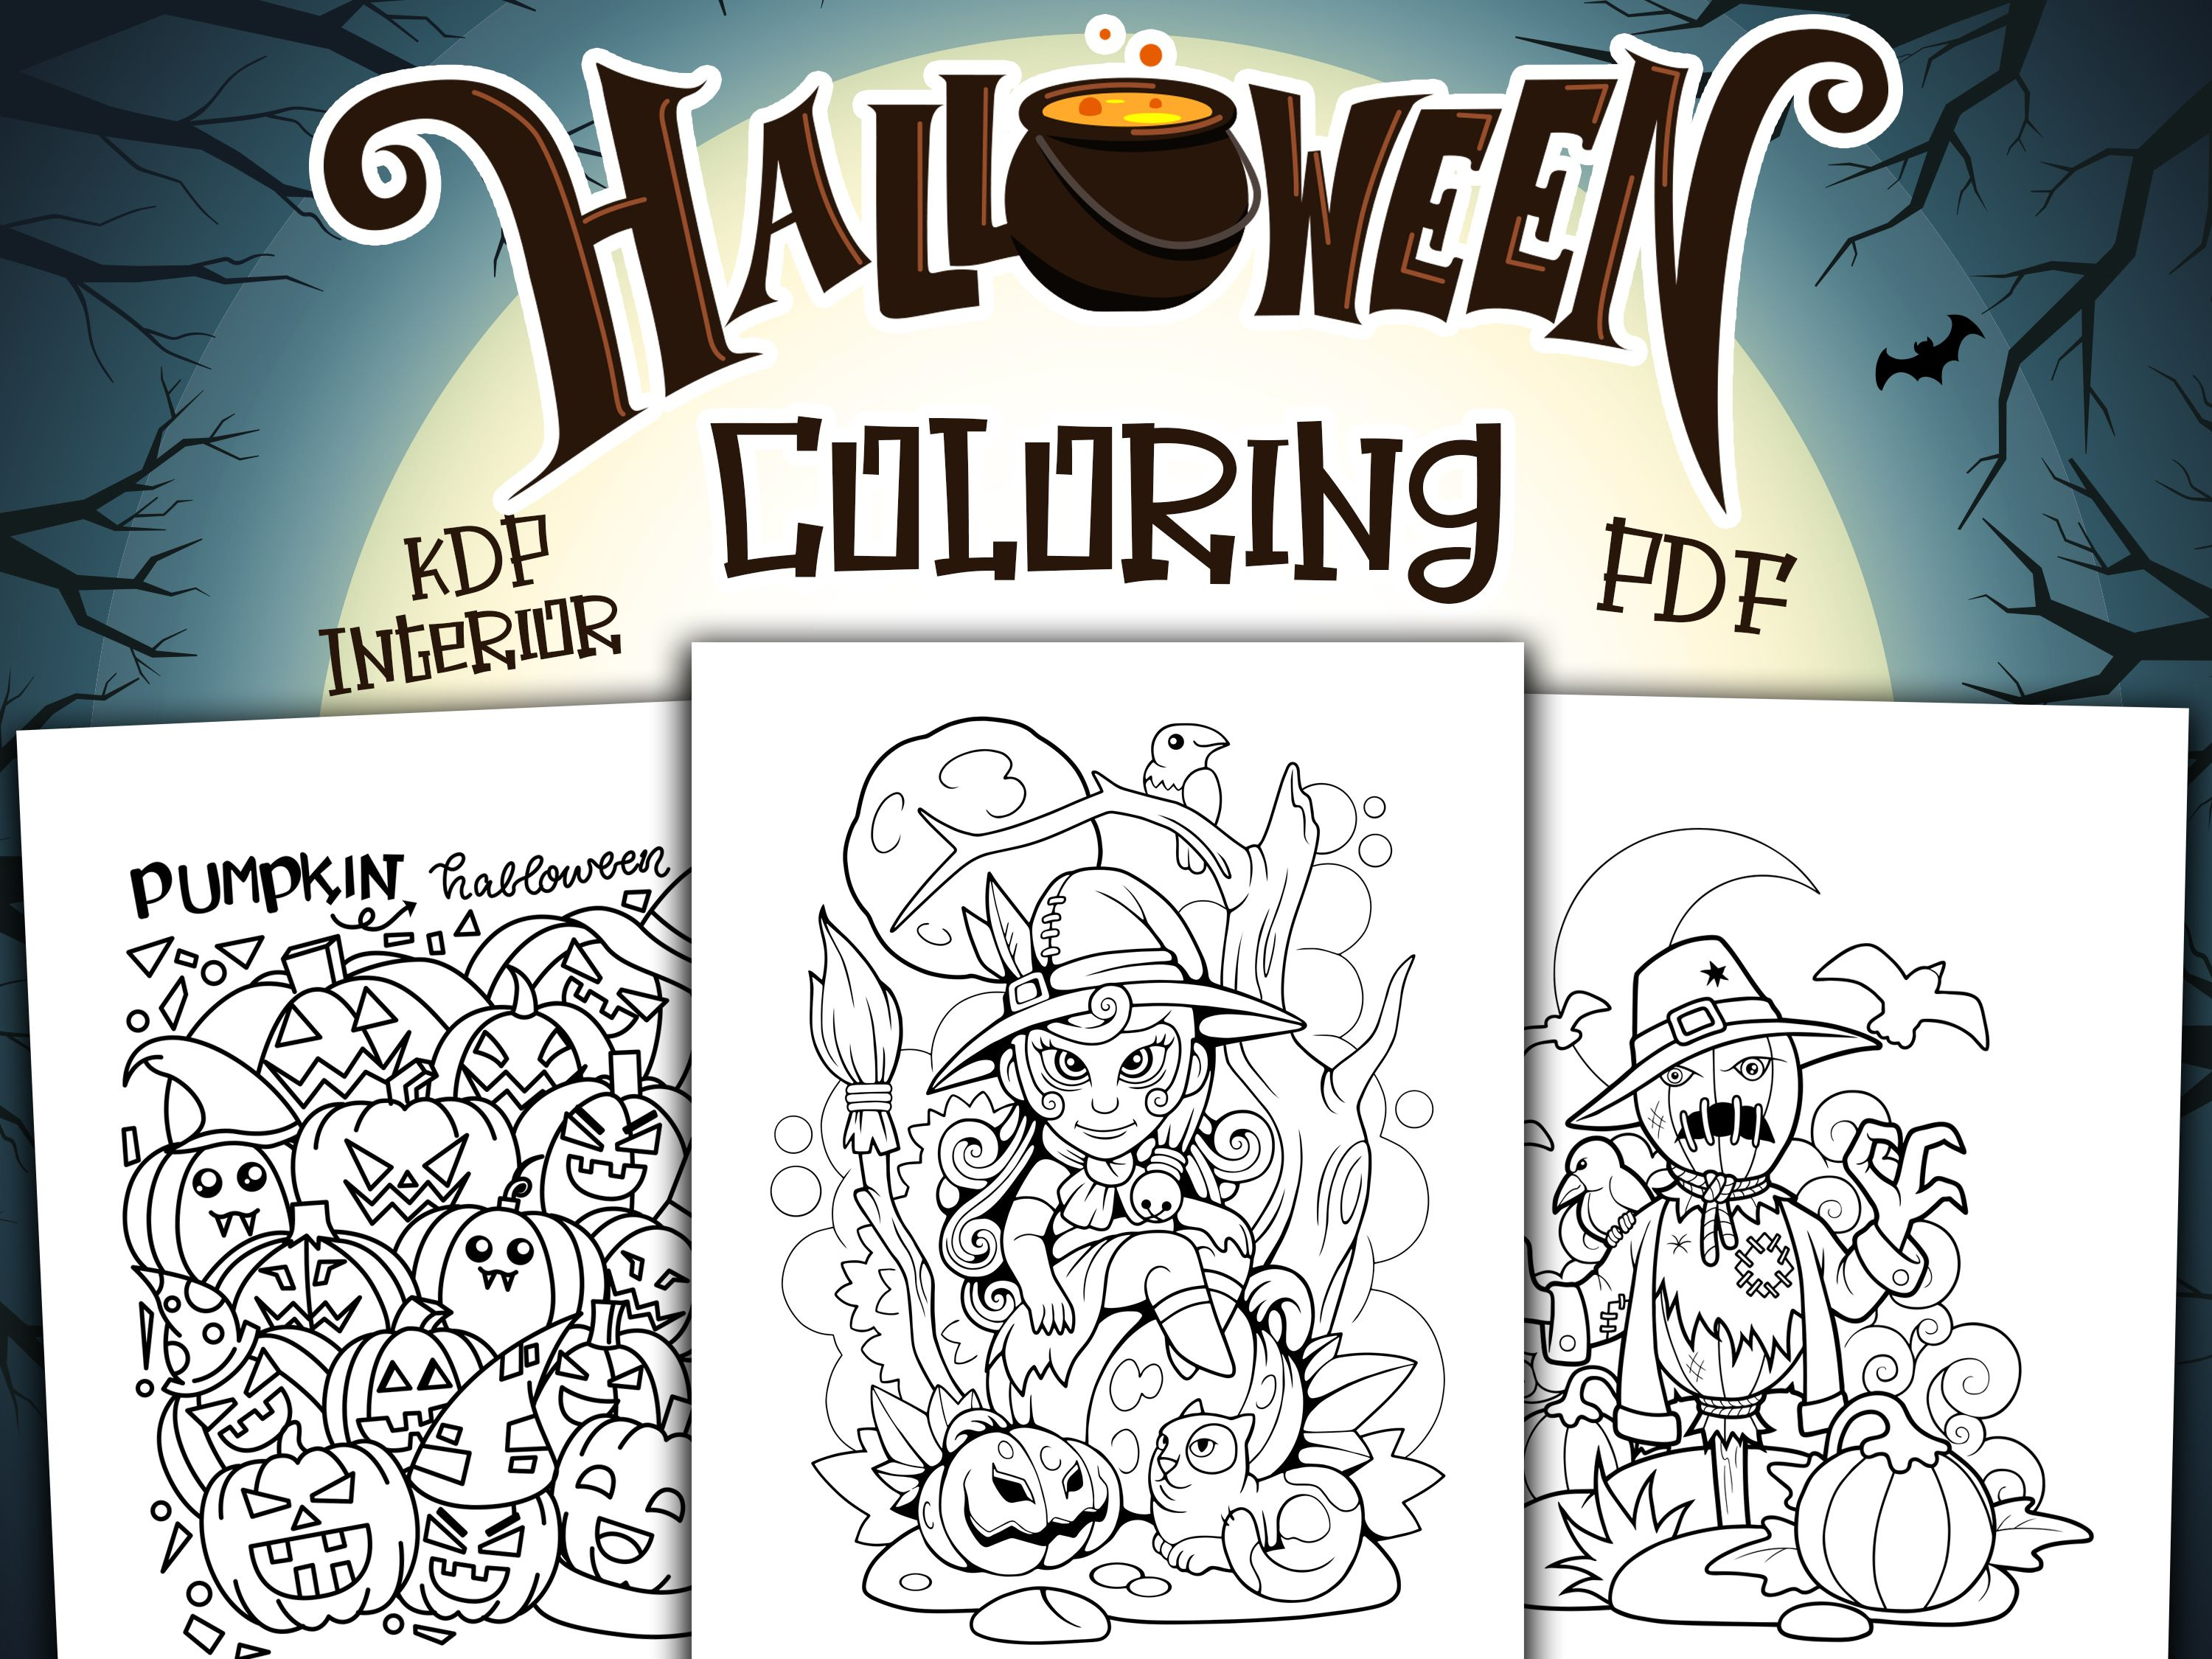 Halloween Holiday Coloring Pages For Kids Children Boys Girls Kdp Interior Template Vector Halloween Coloring Book Halloween Coloring Pages Halloween Coloring